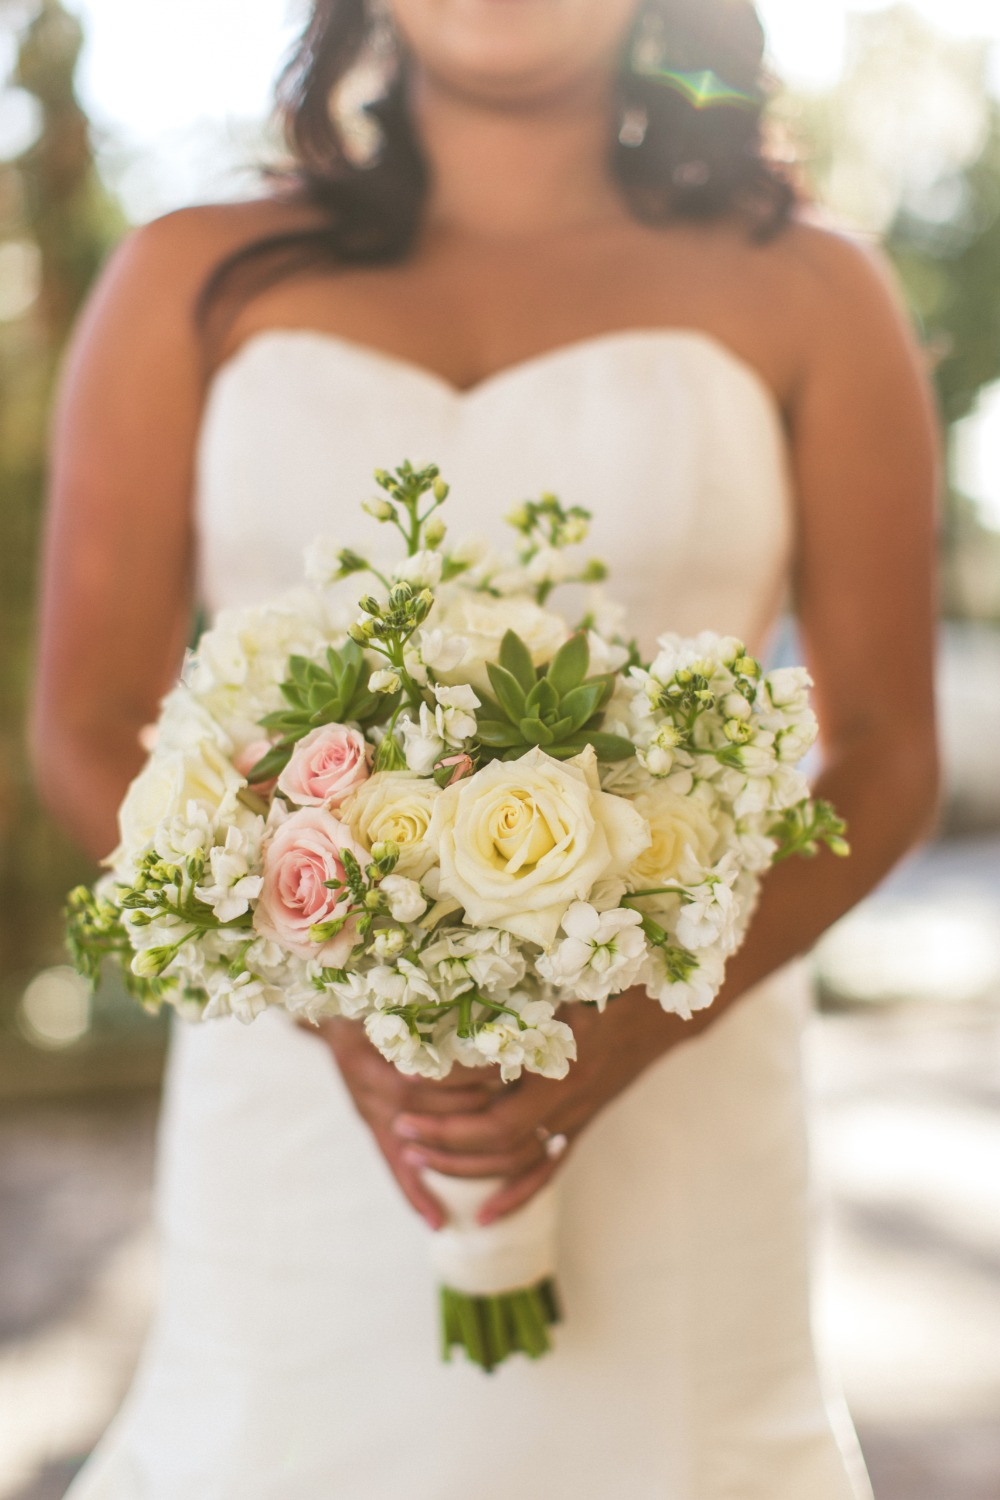 Simple and chic wedding bouquet